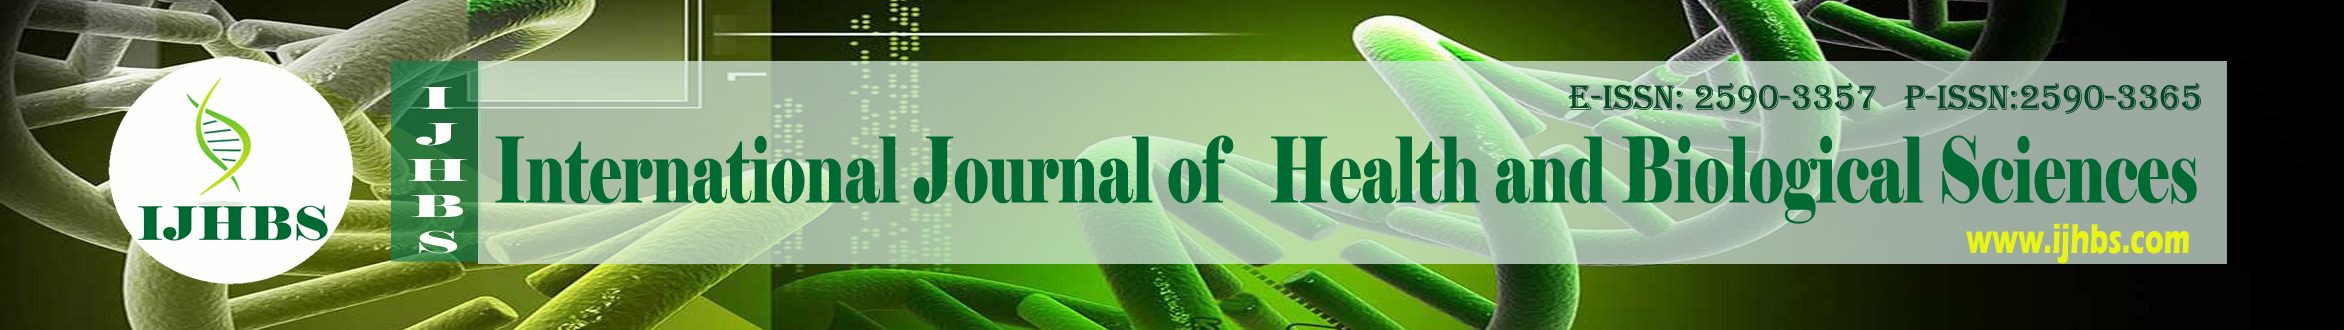 International Journal of Health and Biological Sciences